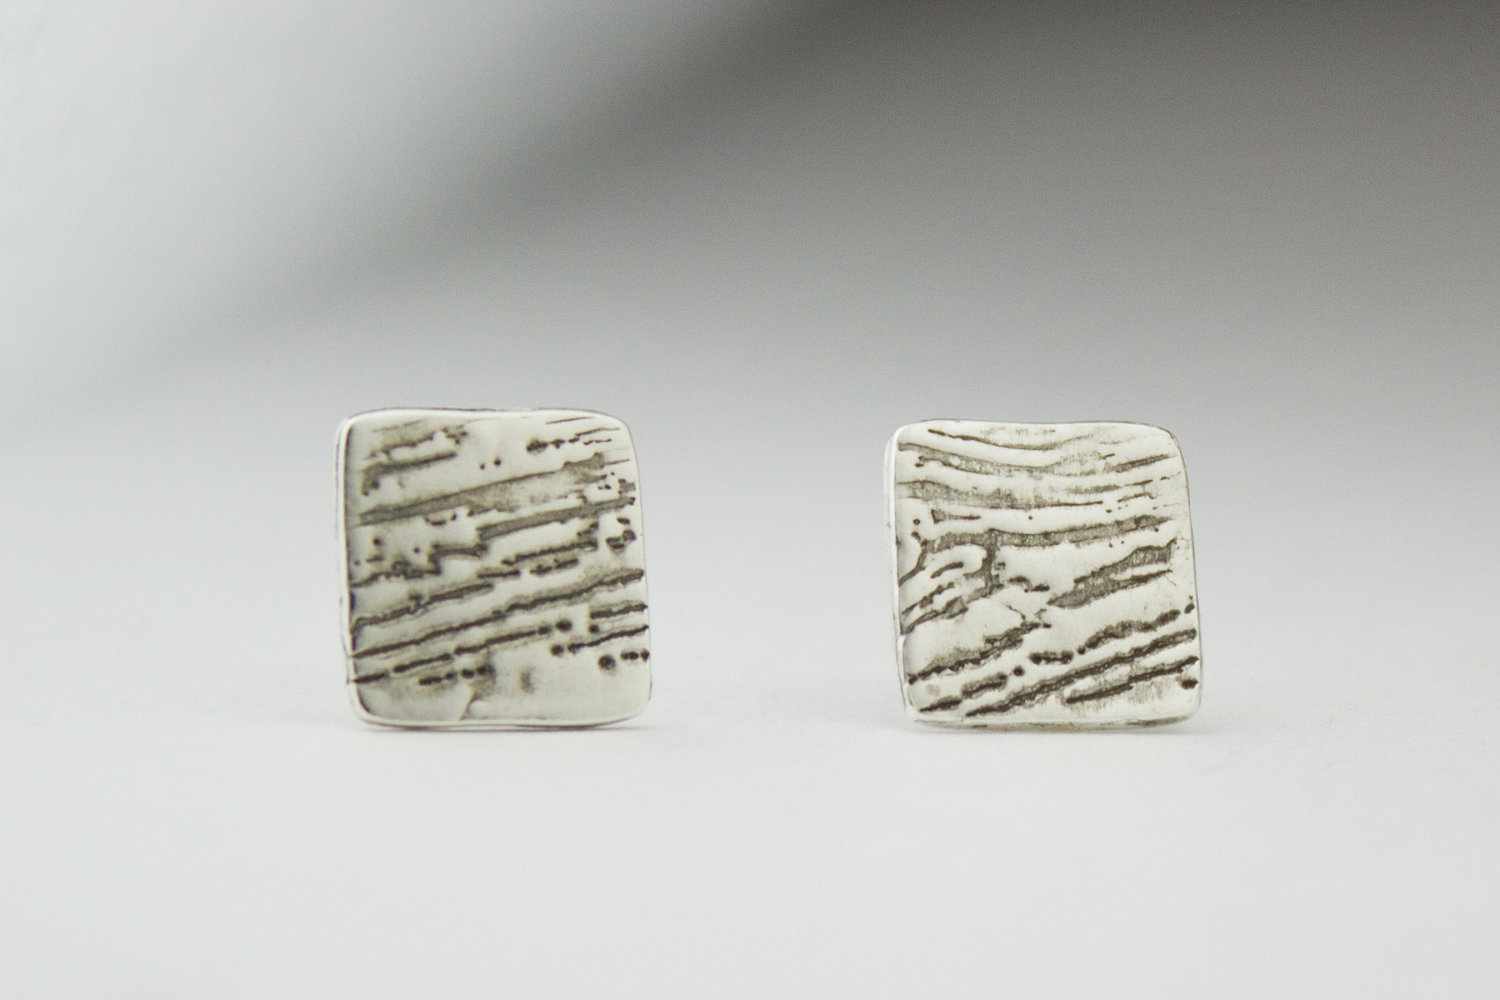 Square woodgrain post earring